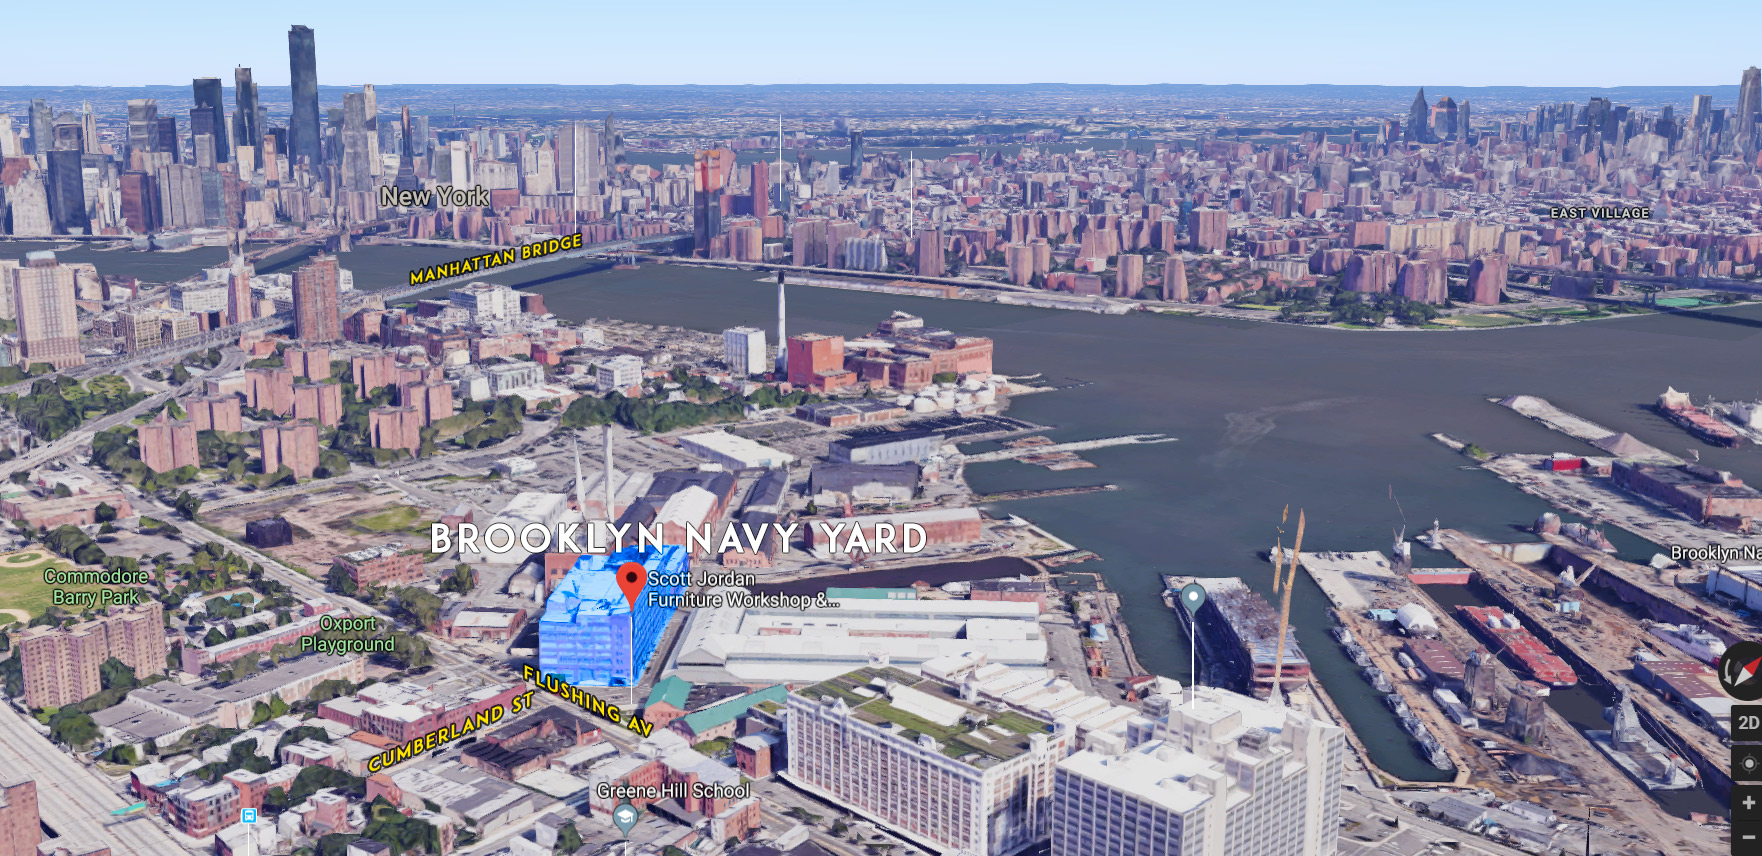 Brooklyn Navy Yard Map